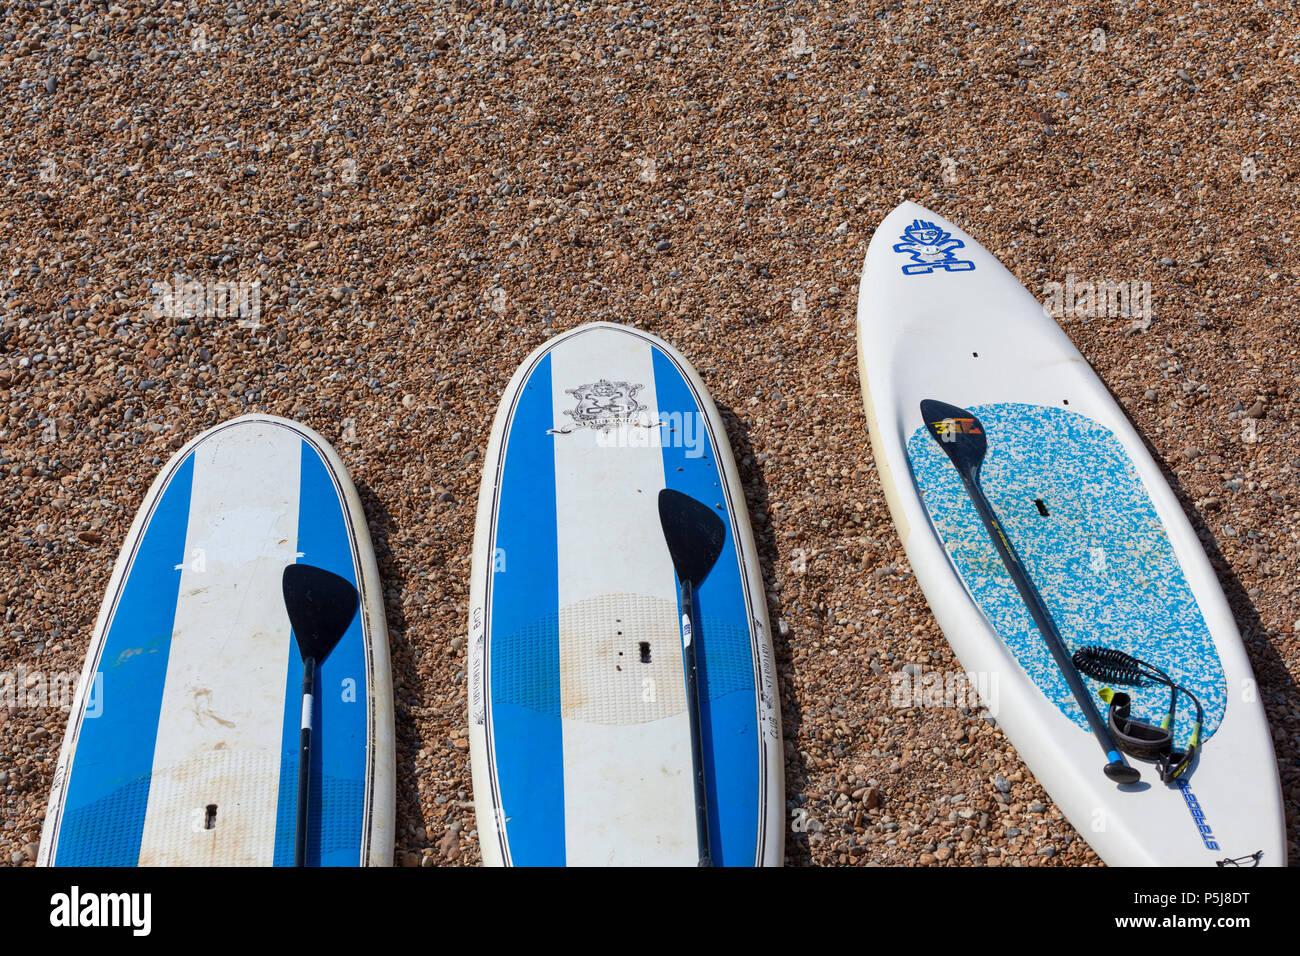 Hastings, East Sussex, UK. 27th Jun, 2018. UK Weather: The Hot and sunny weather continues in Hastings, East Sussex with highs of 30°C in some parts of the country. The heatwave that is hitting Britain is expected to last well into next week. Three paddle boards left on the beach. Photo Credit: PAL Images / Alamy Live News - Stock Image